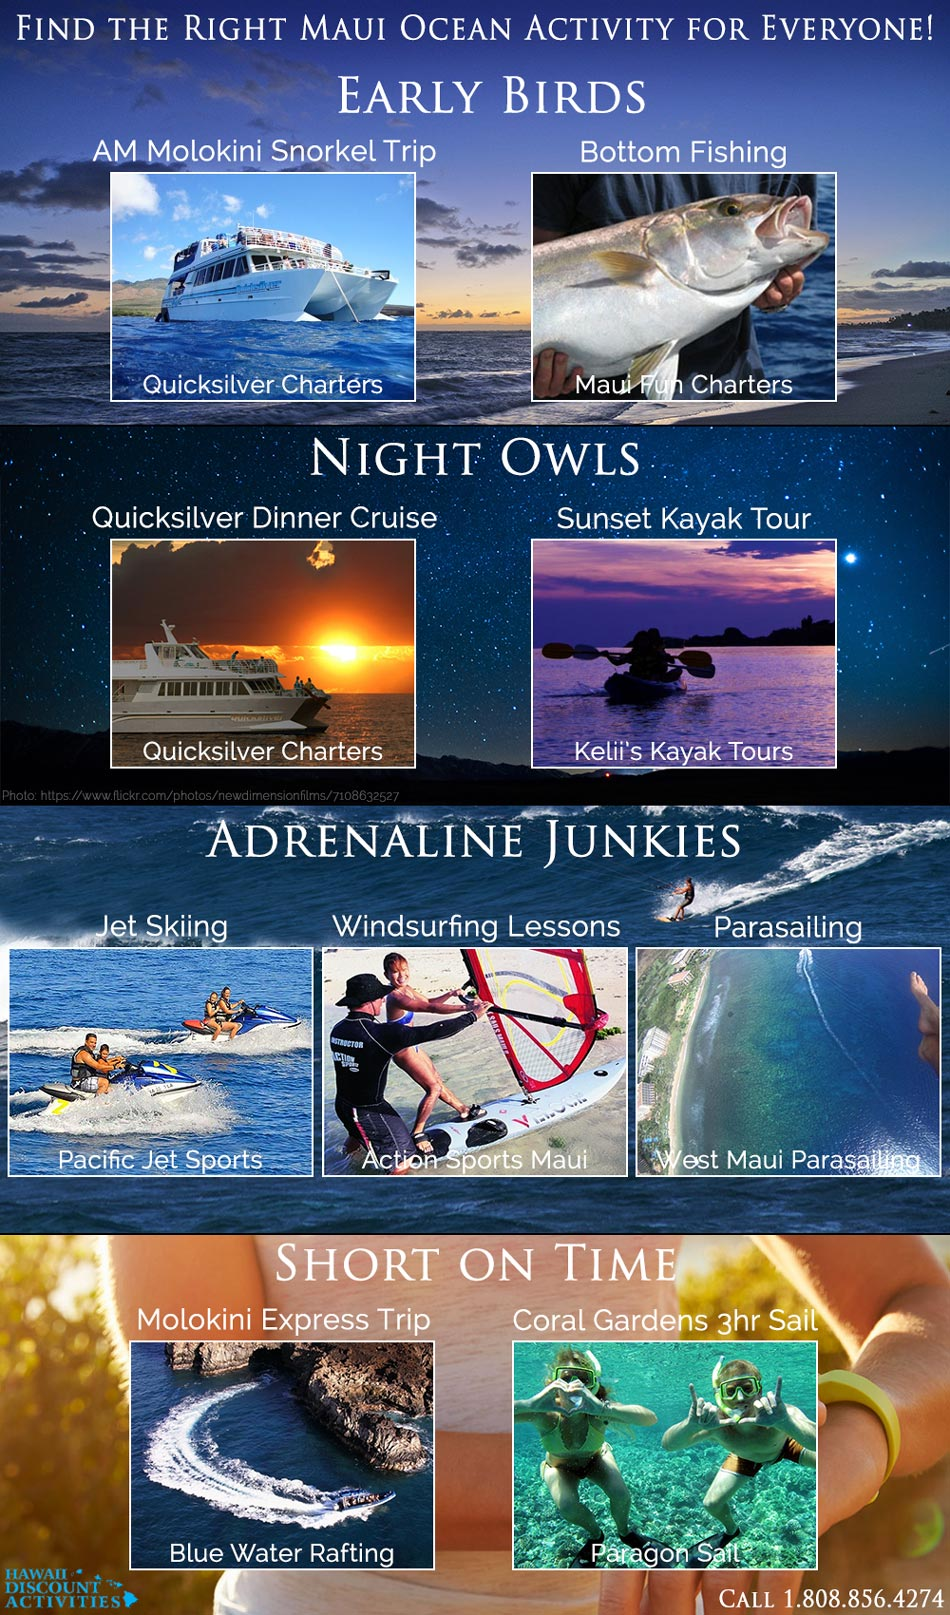 find the right ocean activity infographic